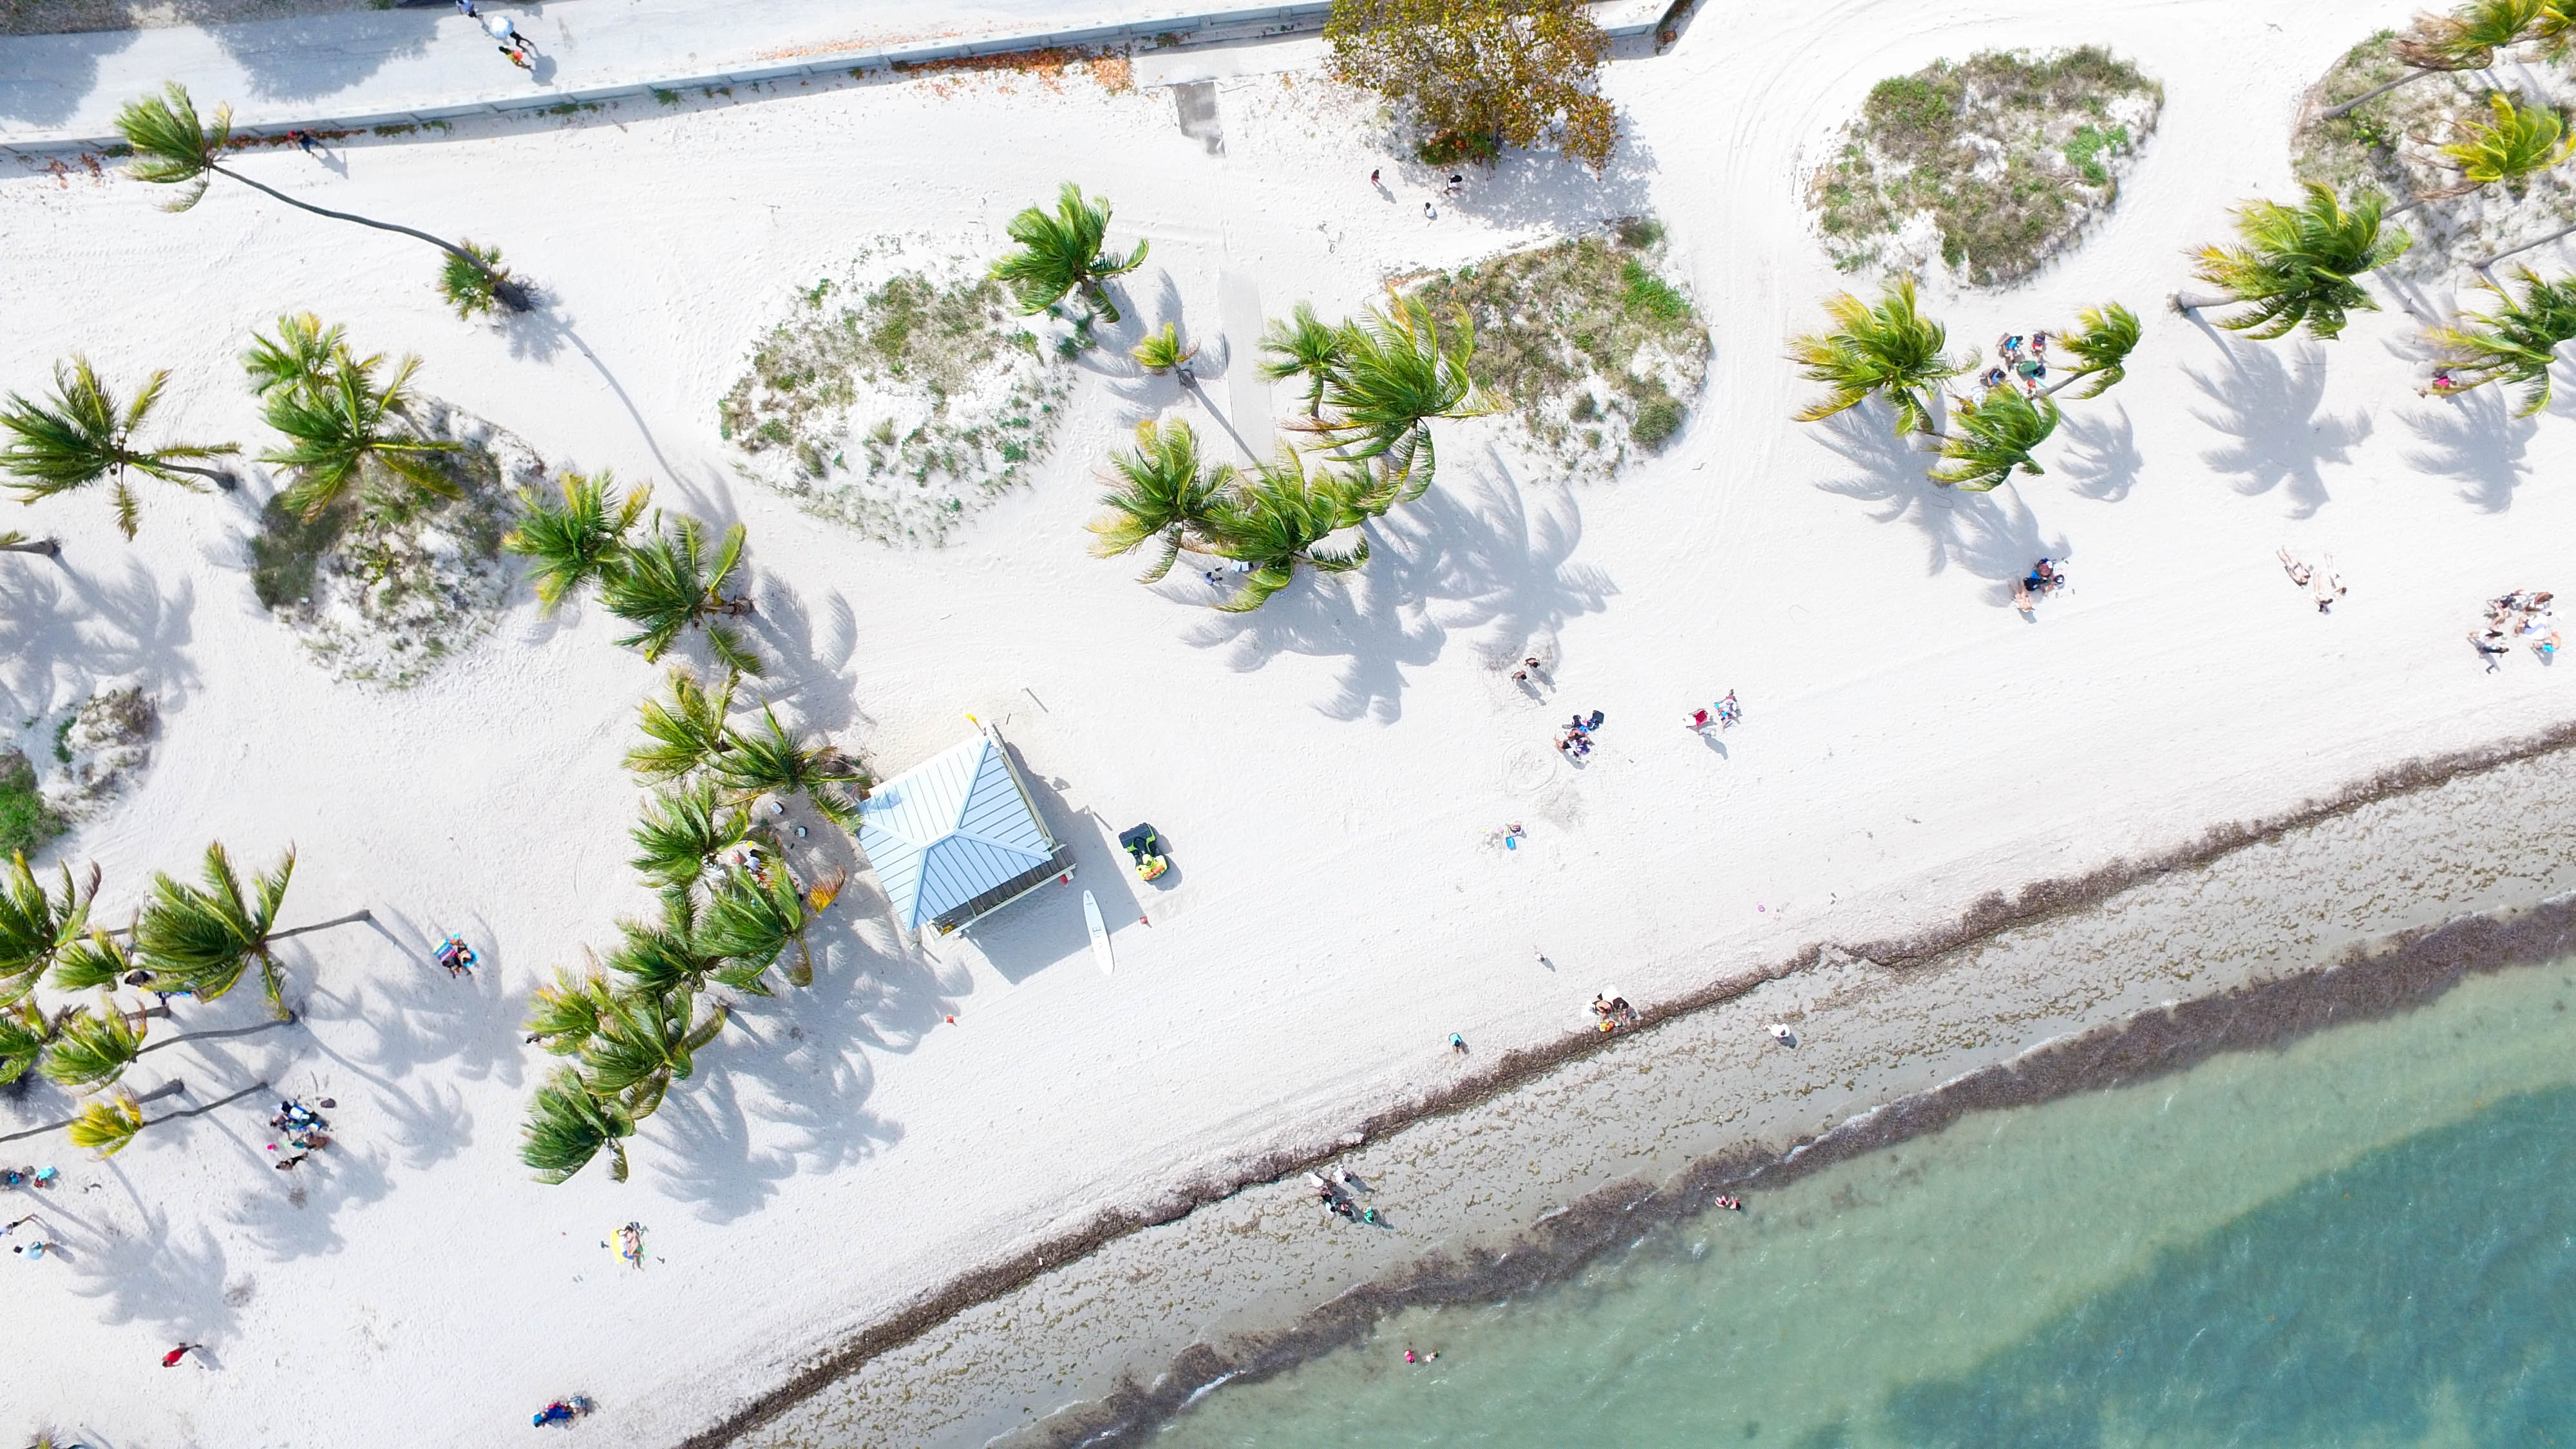 Drone aerial view of a white sand beach with people, palm trees, and a hut